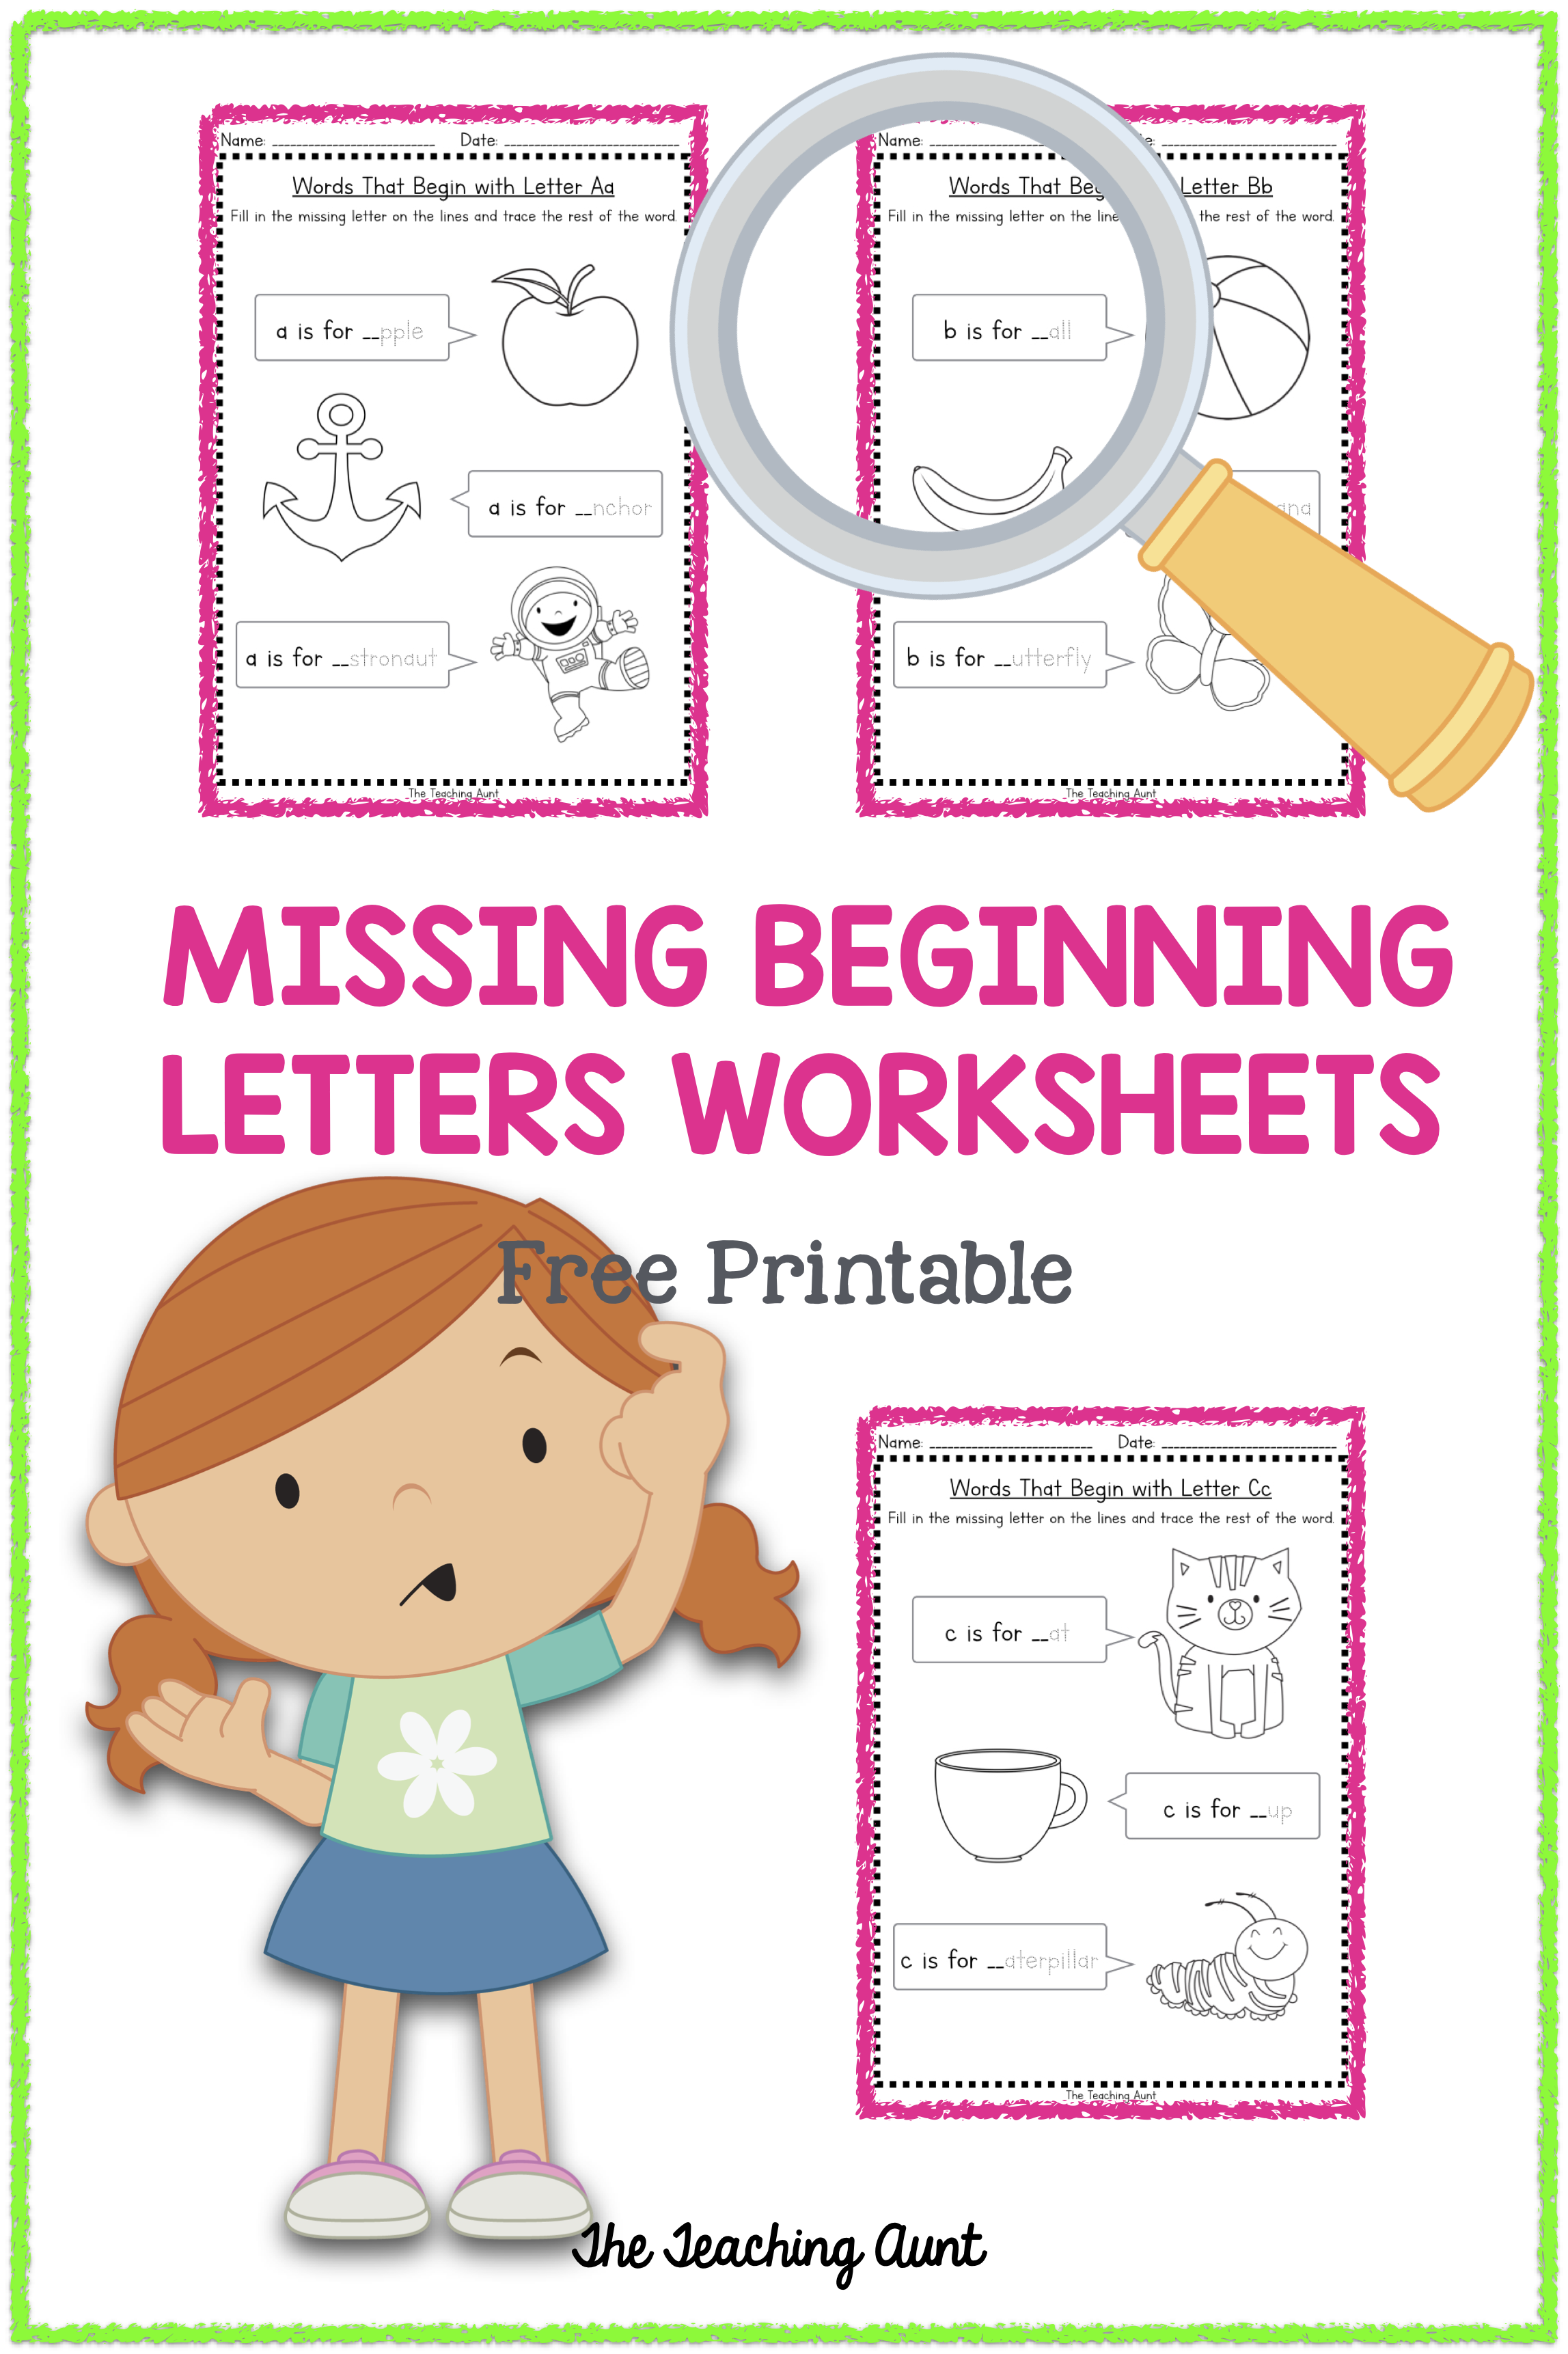 Missing Beginning Letter Worksheets